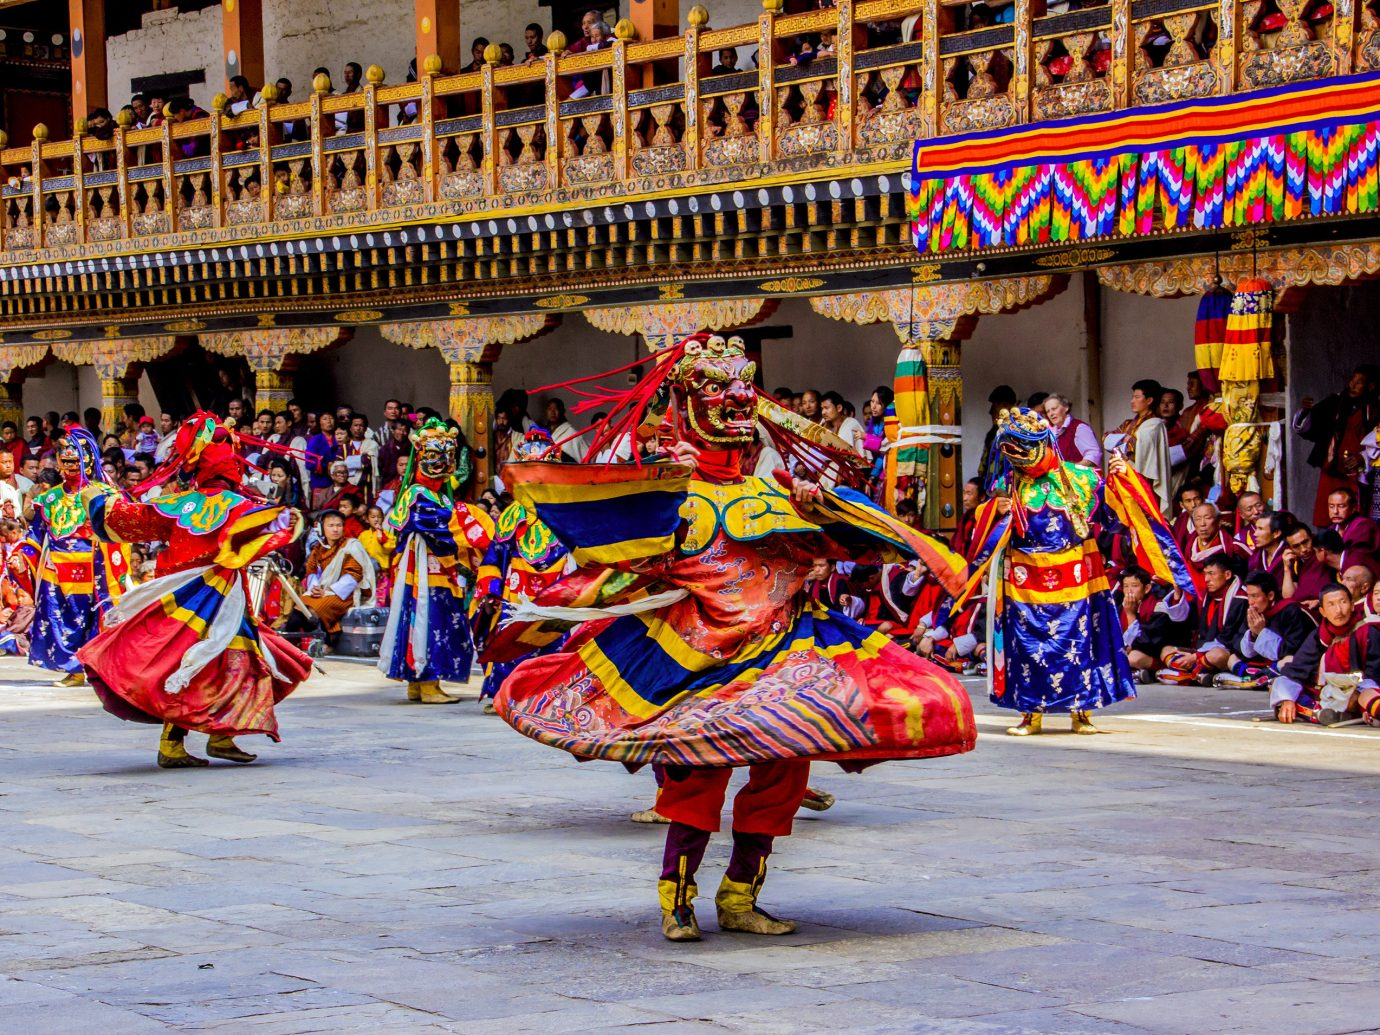 Trip Ideas dancer Sport colorful people outdoor performing arts dance event folk dance tradition festival temple carnival colored decorated